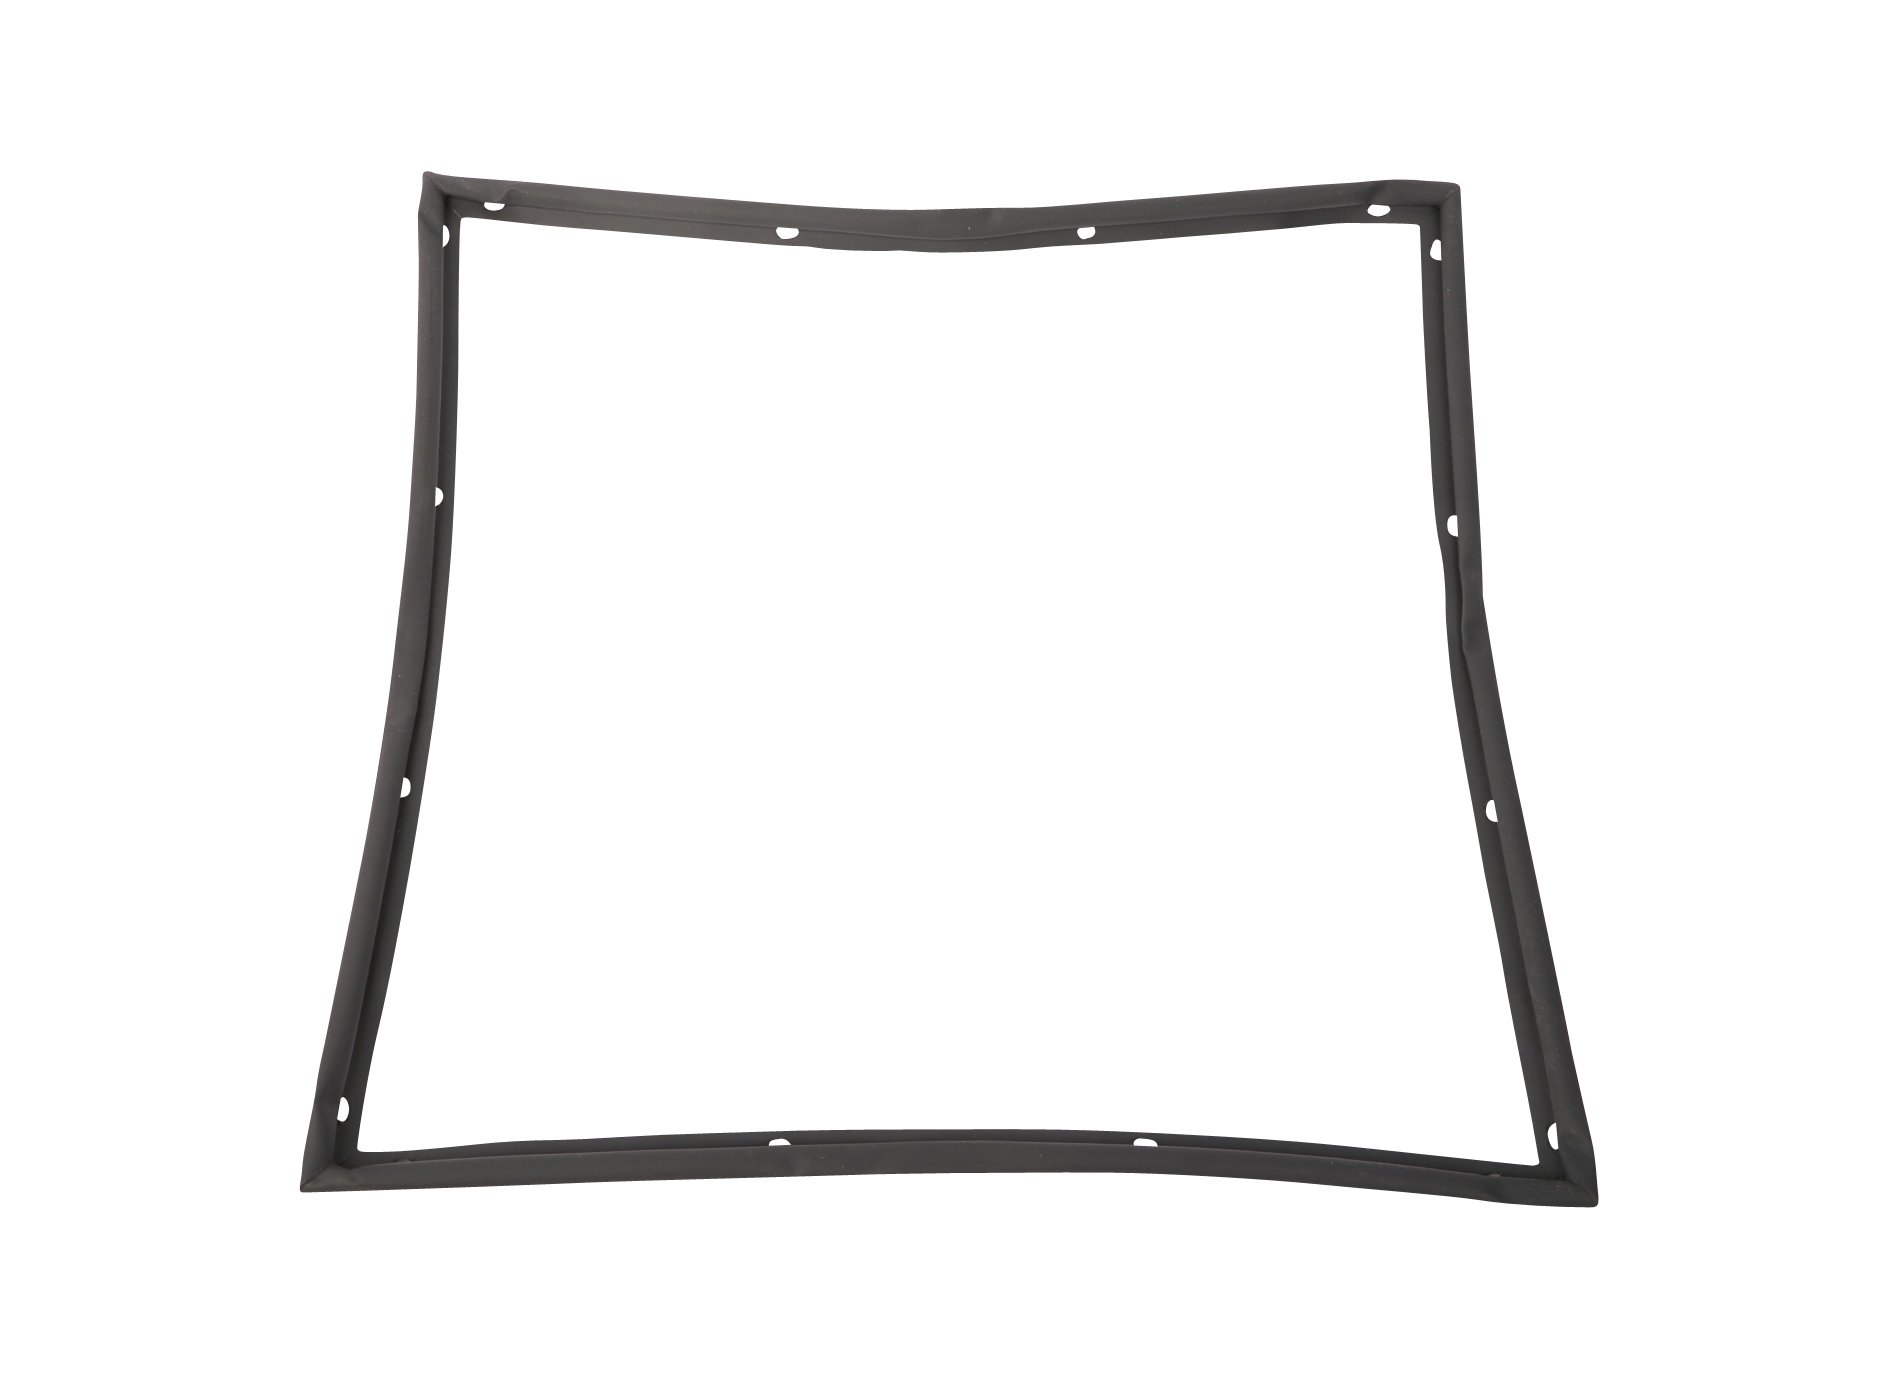 Intermetro RPC06-331 Door Gasket by InterMETRO